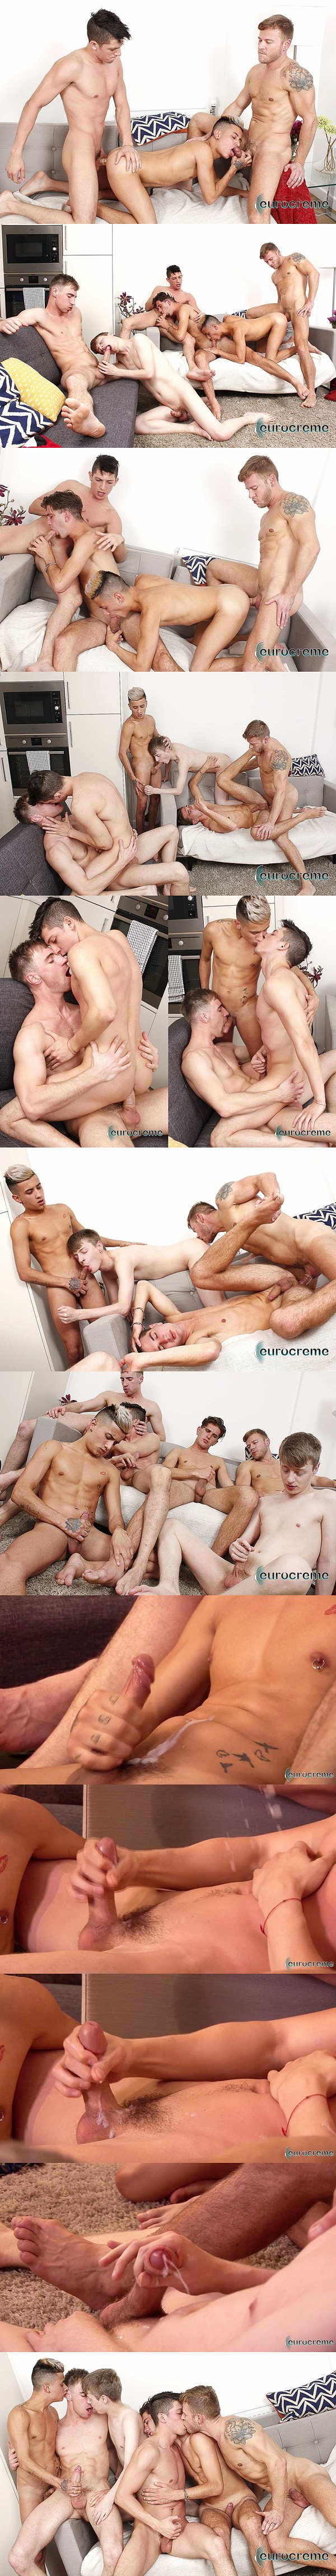 Matthew Anders and Kayden Gray fuck Danny Montero, Cory Prince, Lyle Boyce and Ross Drake in Big Dicked Orgy at Eurocreme 02